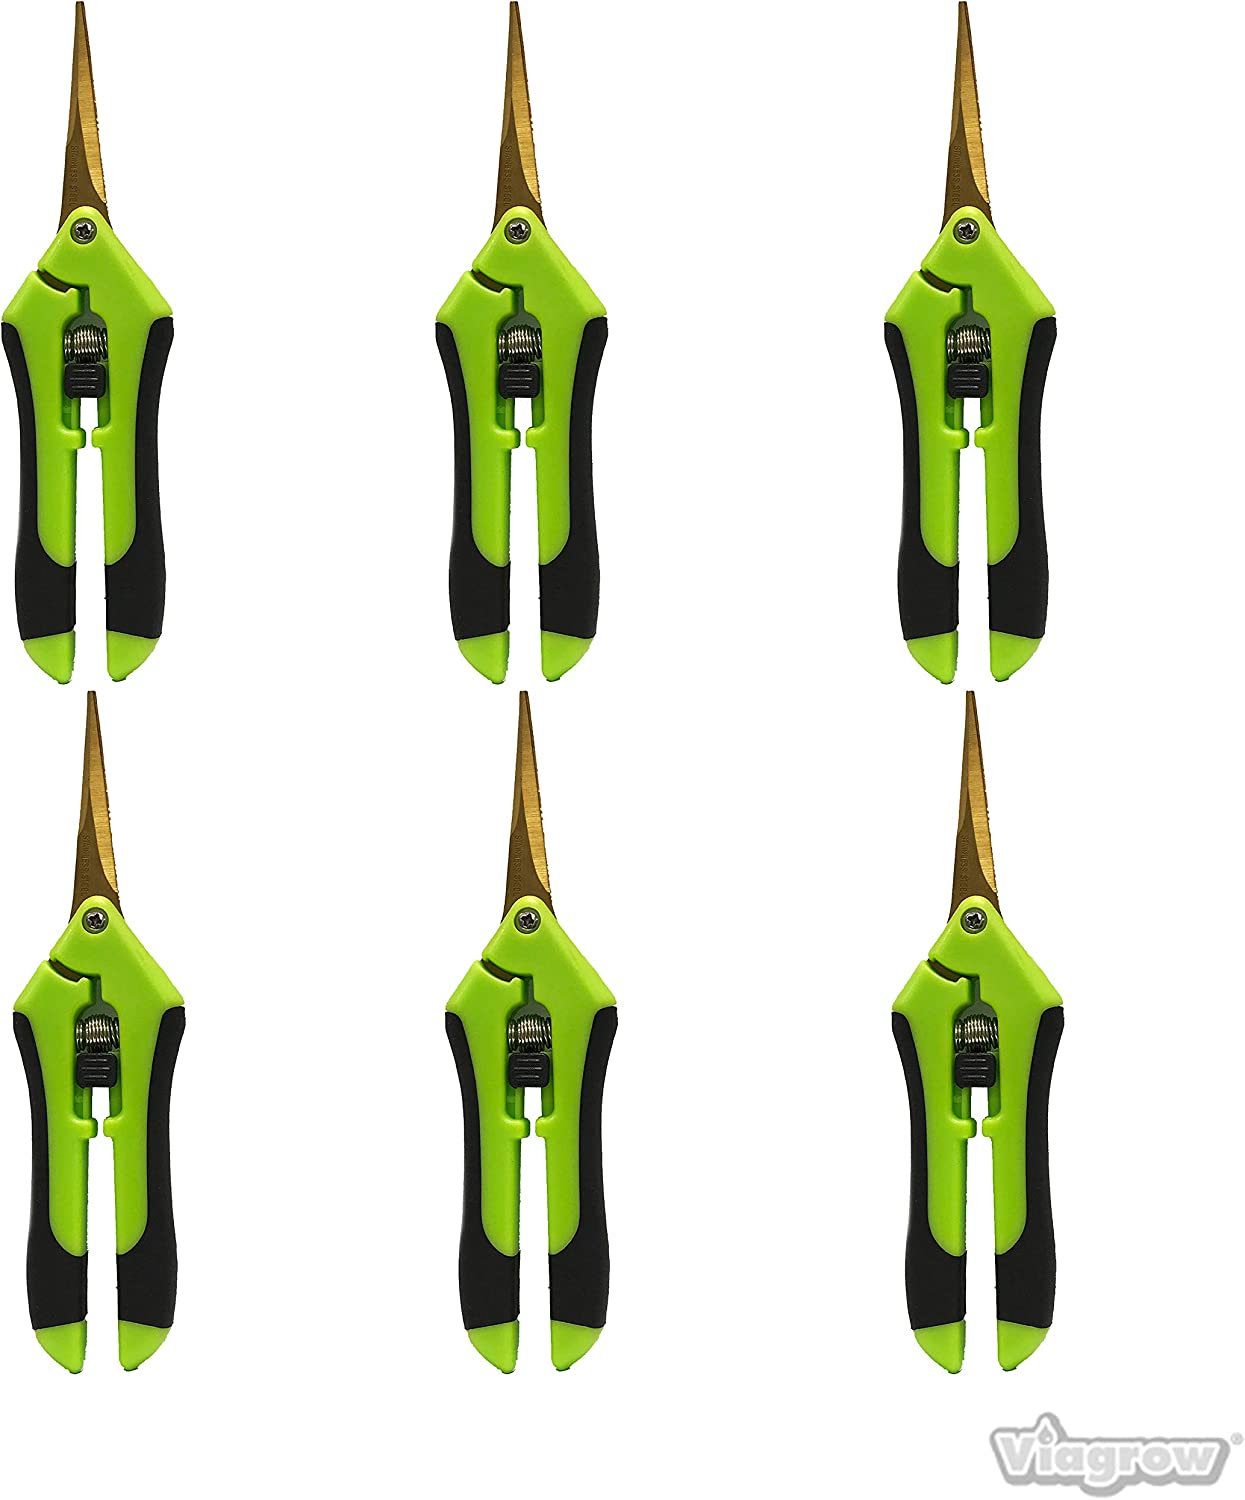 Viagrow V388C-6 Curved Non Soft Grip Micro-Tip Pruning Snip with Stra, 6-Pack, Green